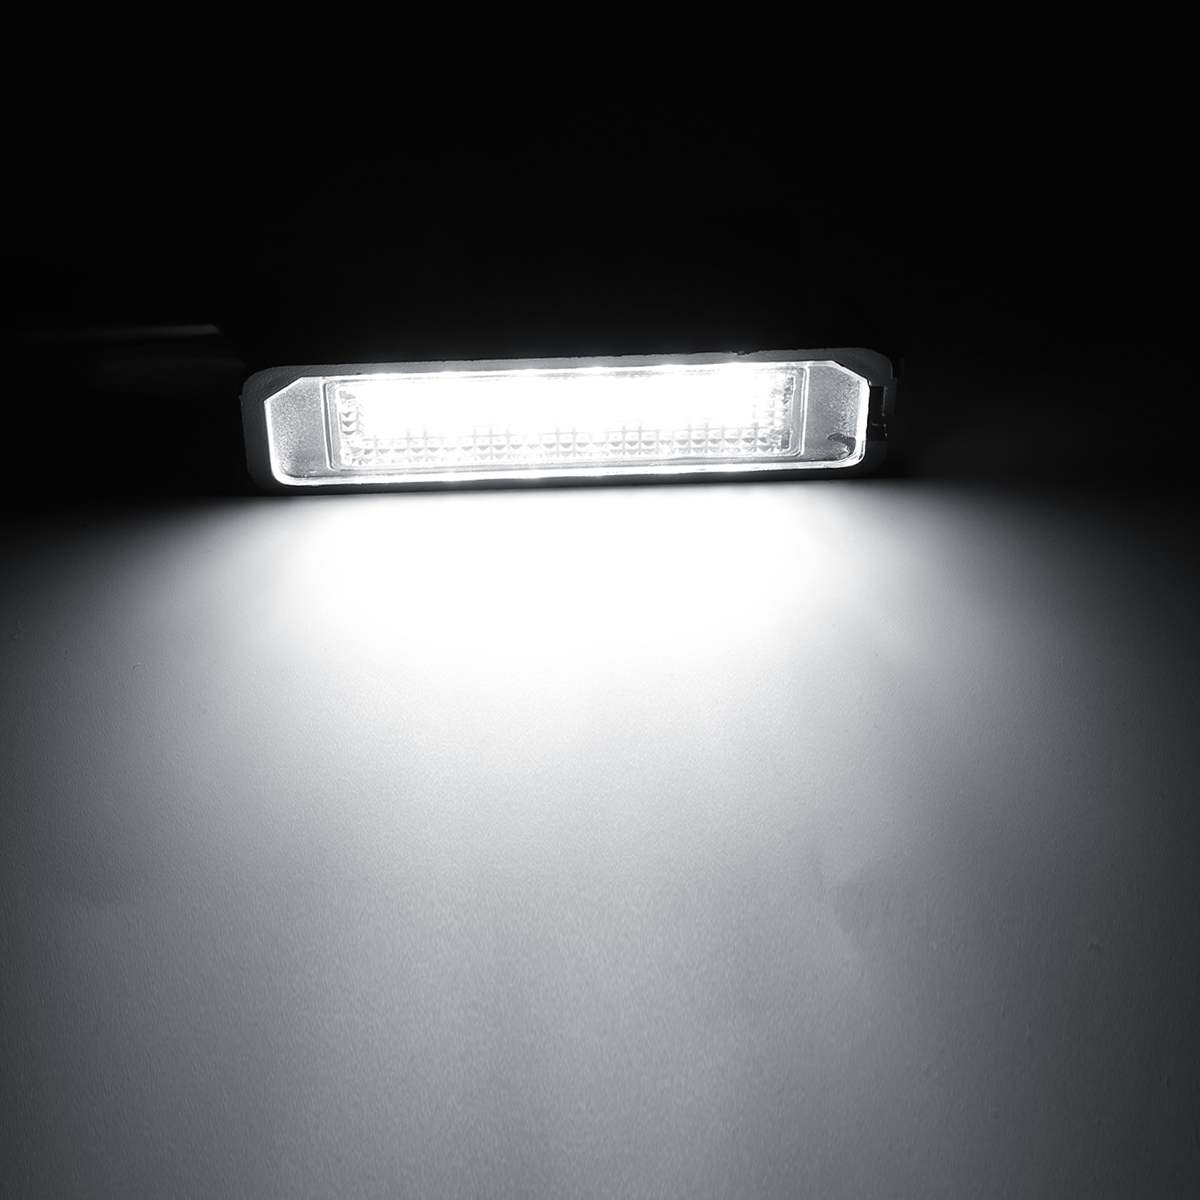 2pcs 12v 5w Led Number License Plate Light Lamps For Vw Golf 4 6 Polo 9n For Passat Car License Plate Lights Exterior Access Super Deal 7cbba Cicig